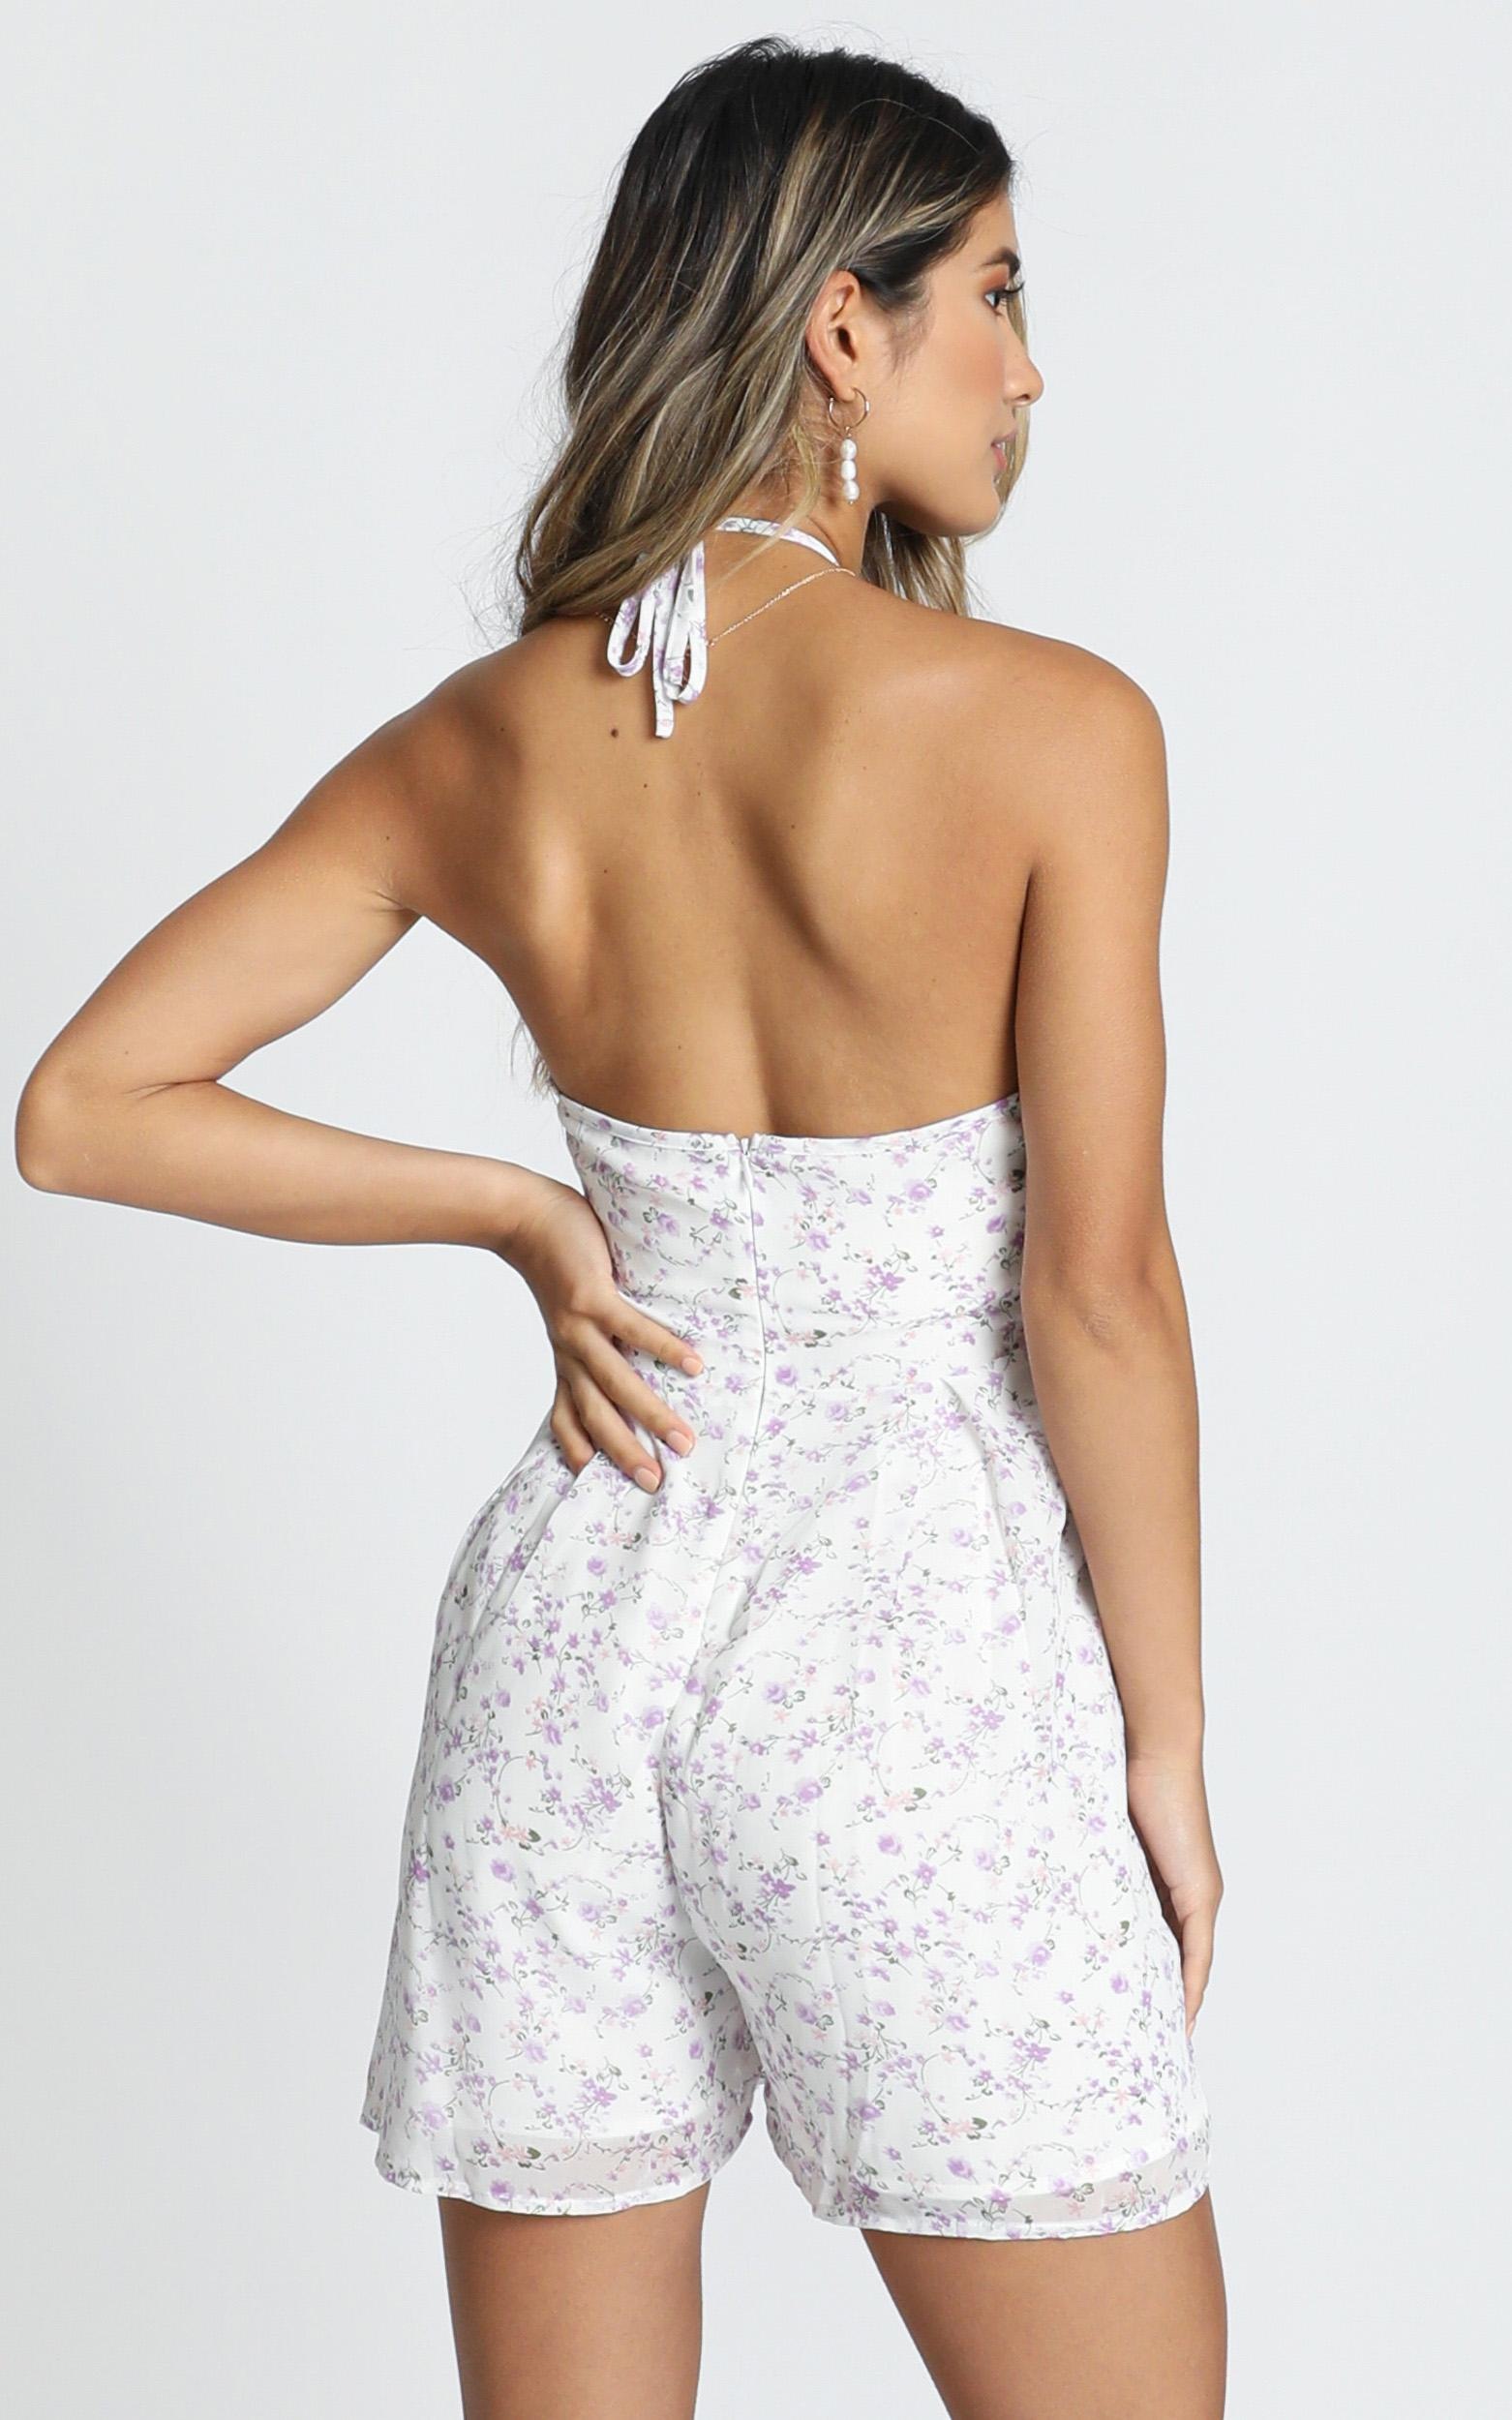 Mirror Of The Mind Playsuit in white floral - 20 (XXXXL), White, hi-res image number null